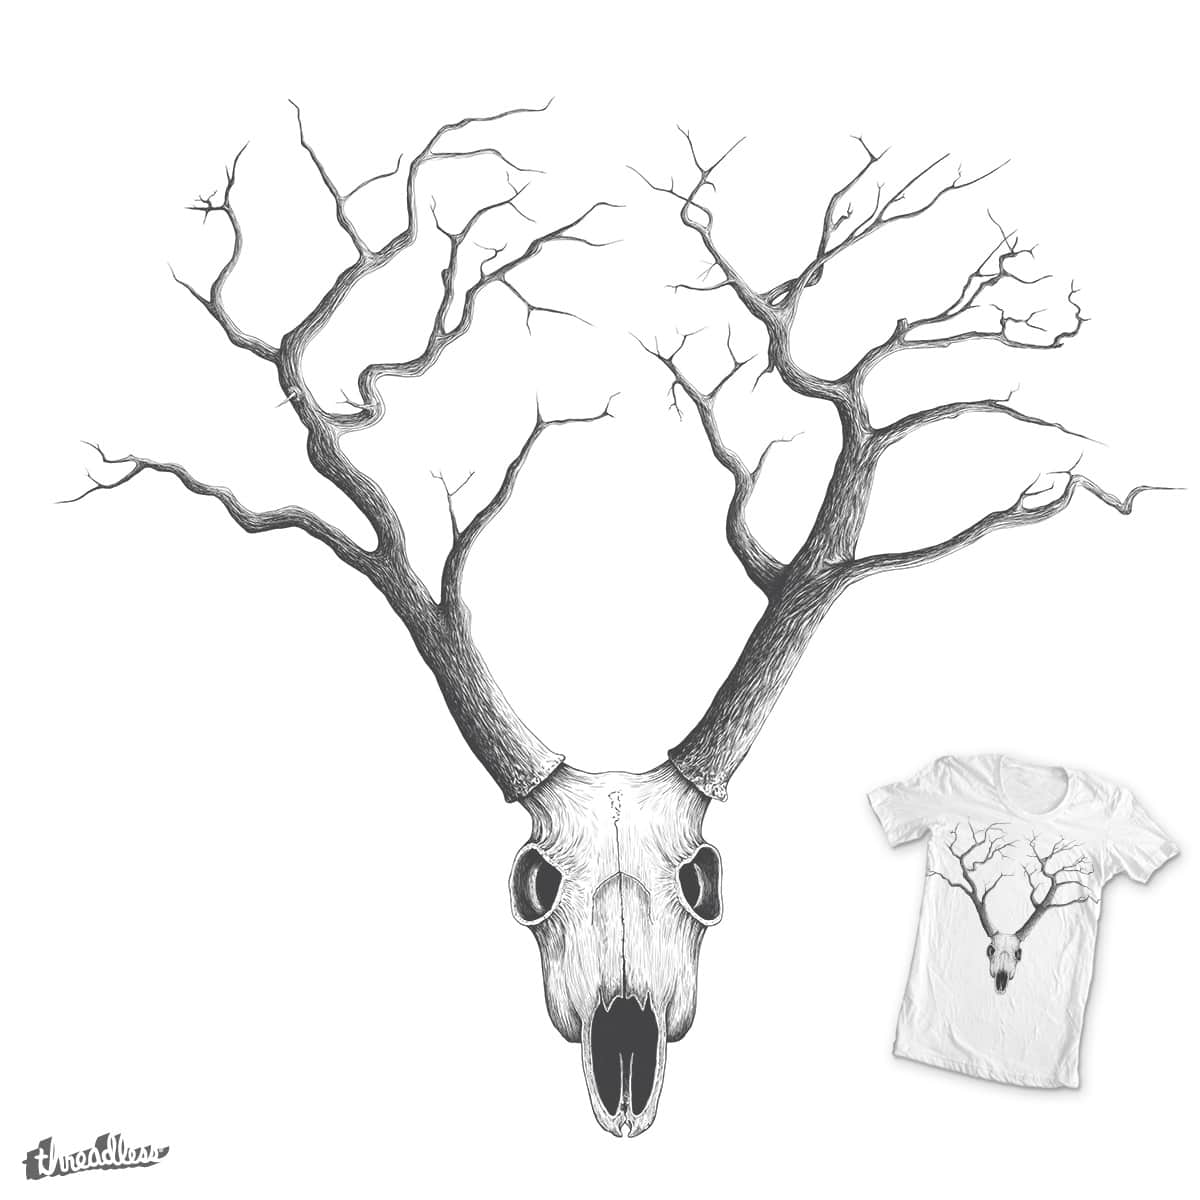 NO RAIN MY DEER by los tomatos on Threadless